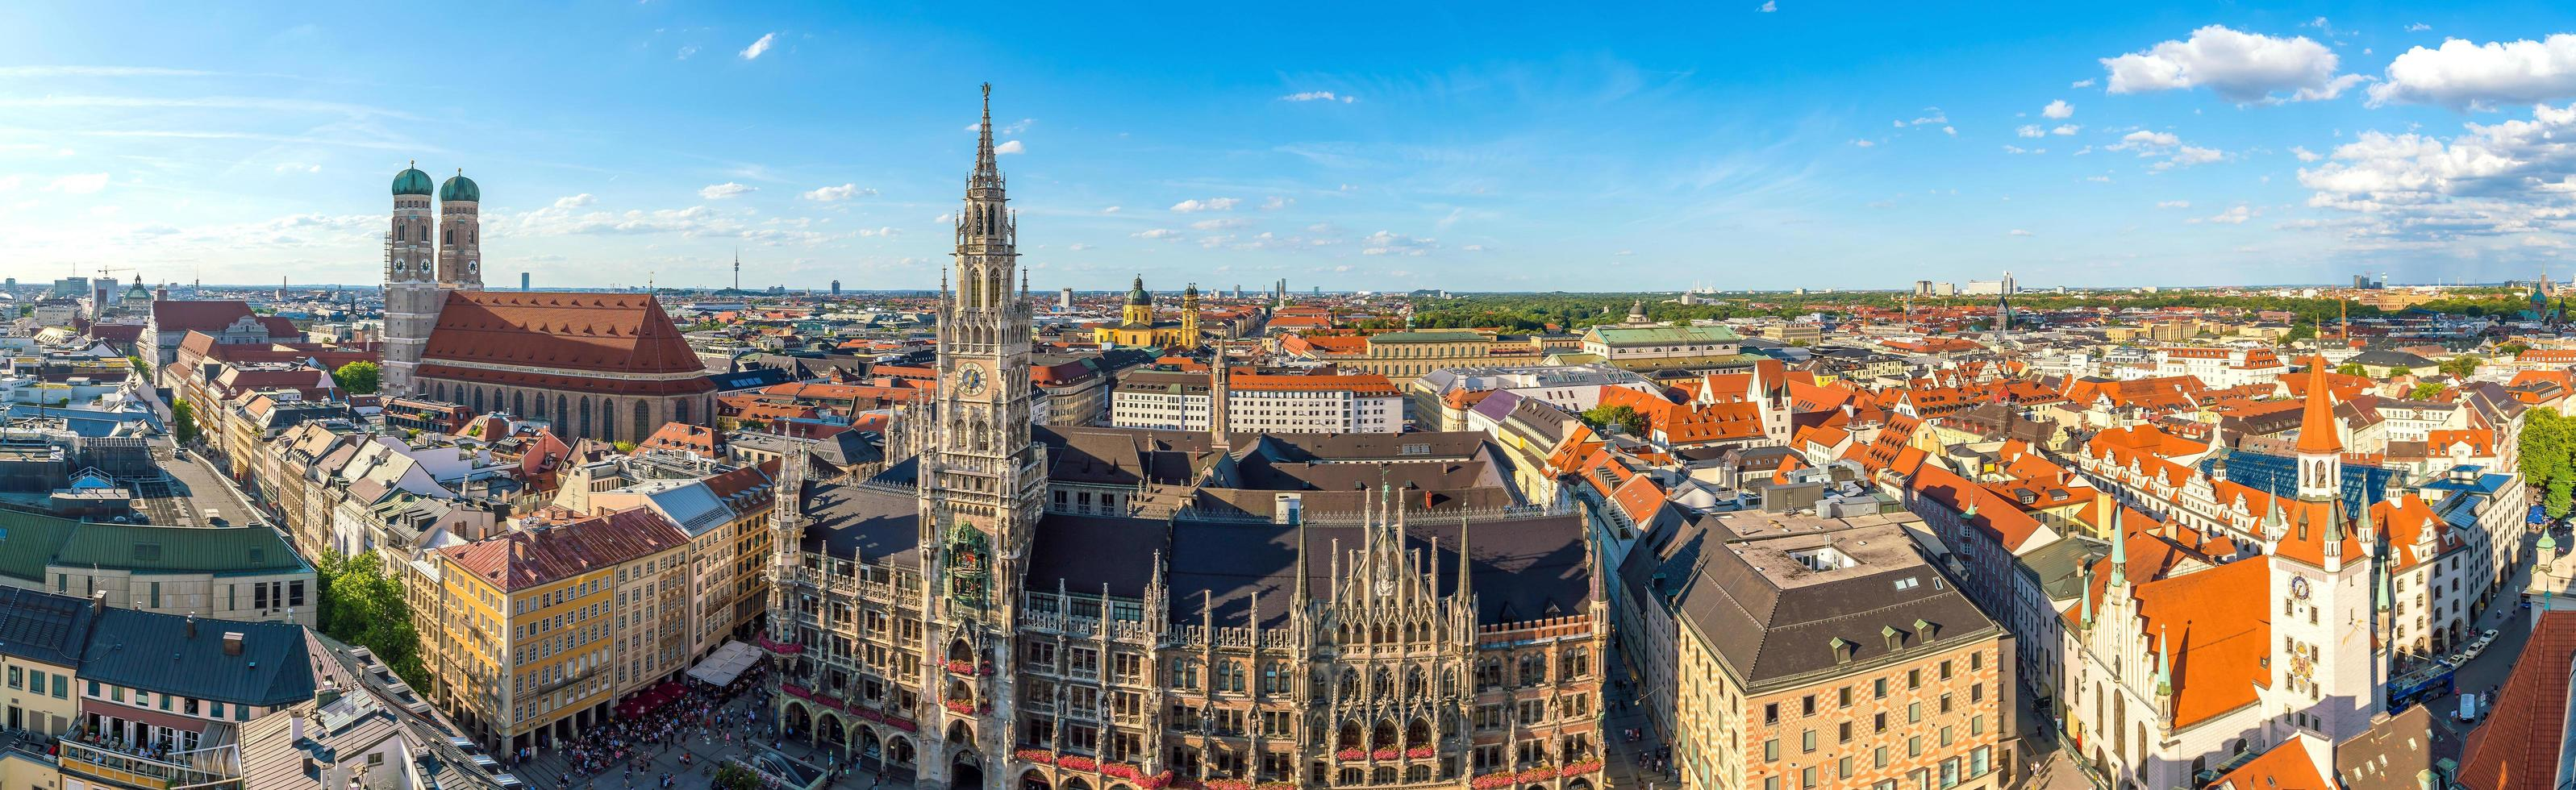 Munich downtown skyline  photo